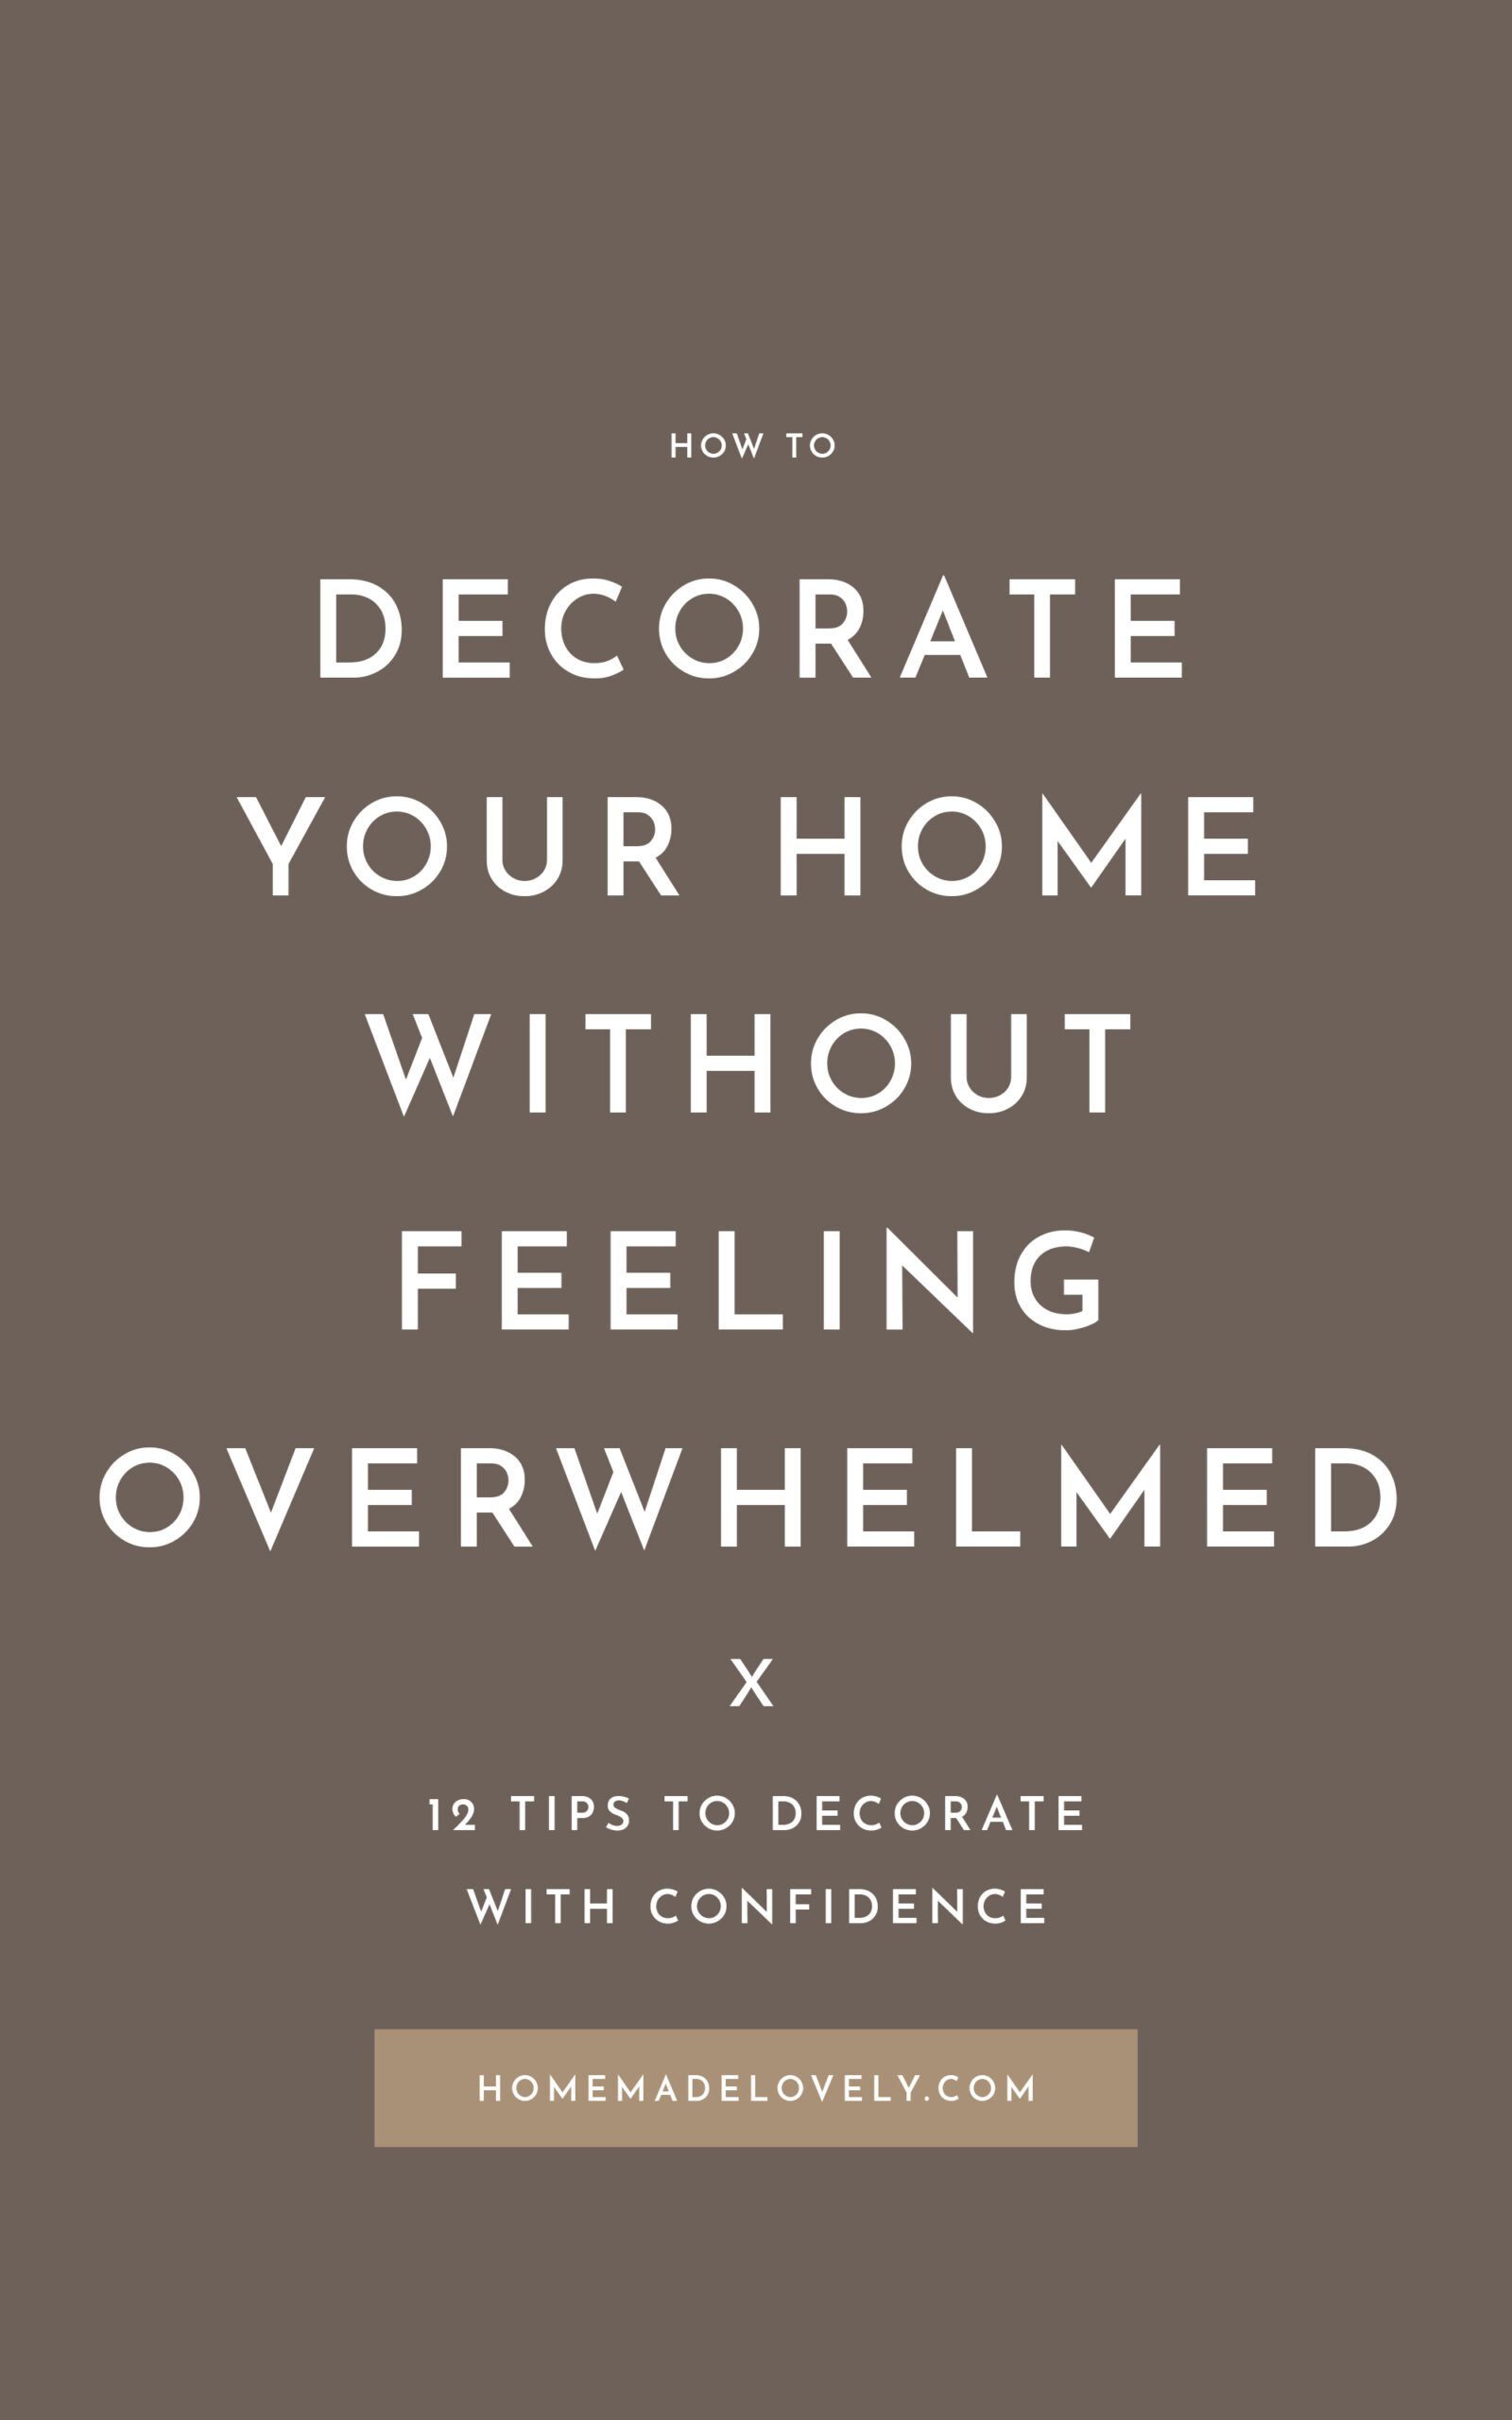 How to Decorate Your Home without Feeling Overwhelmed text overlay